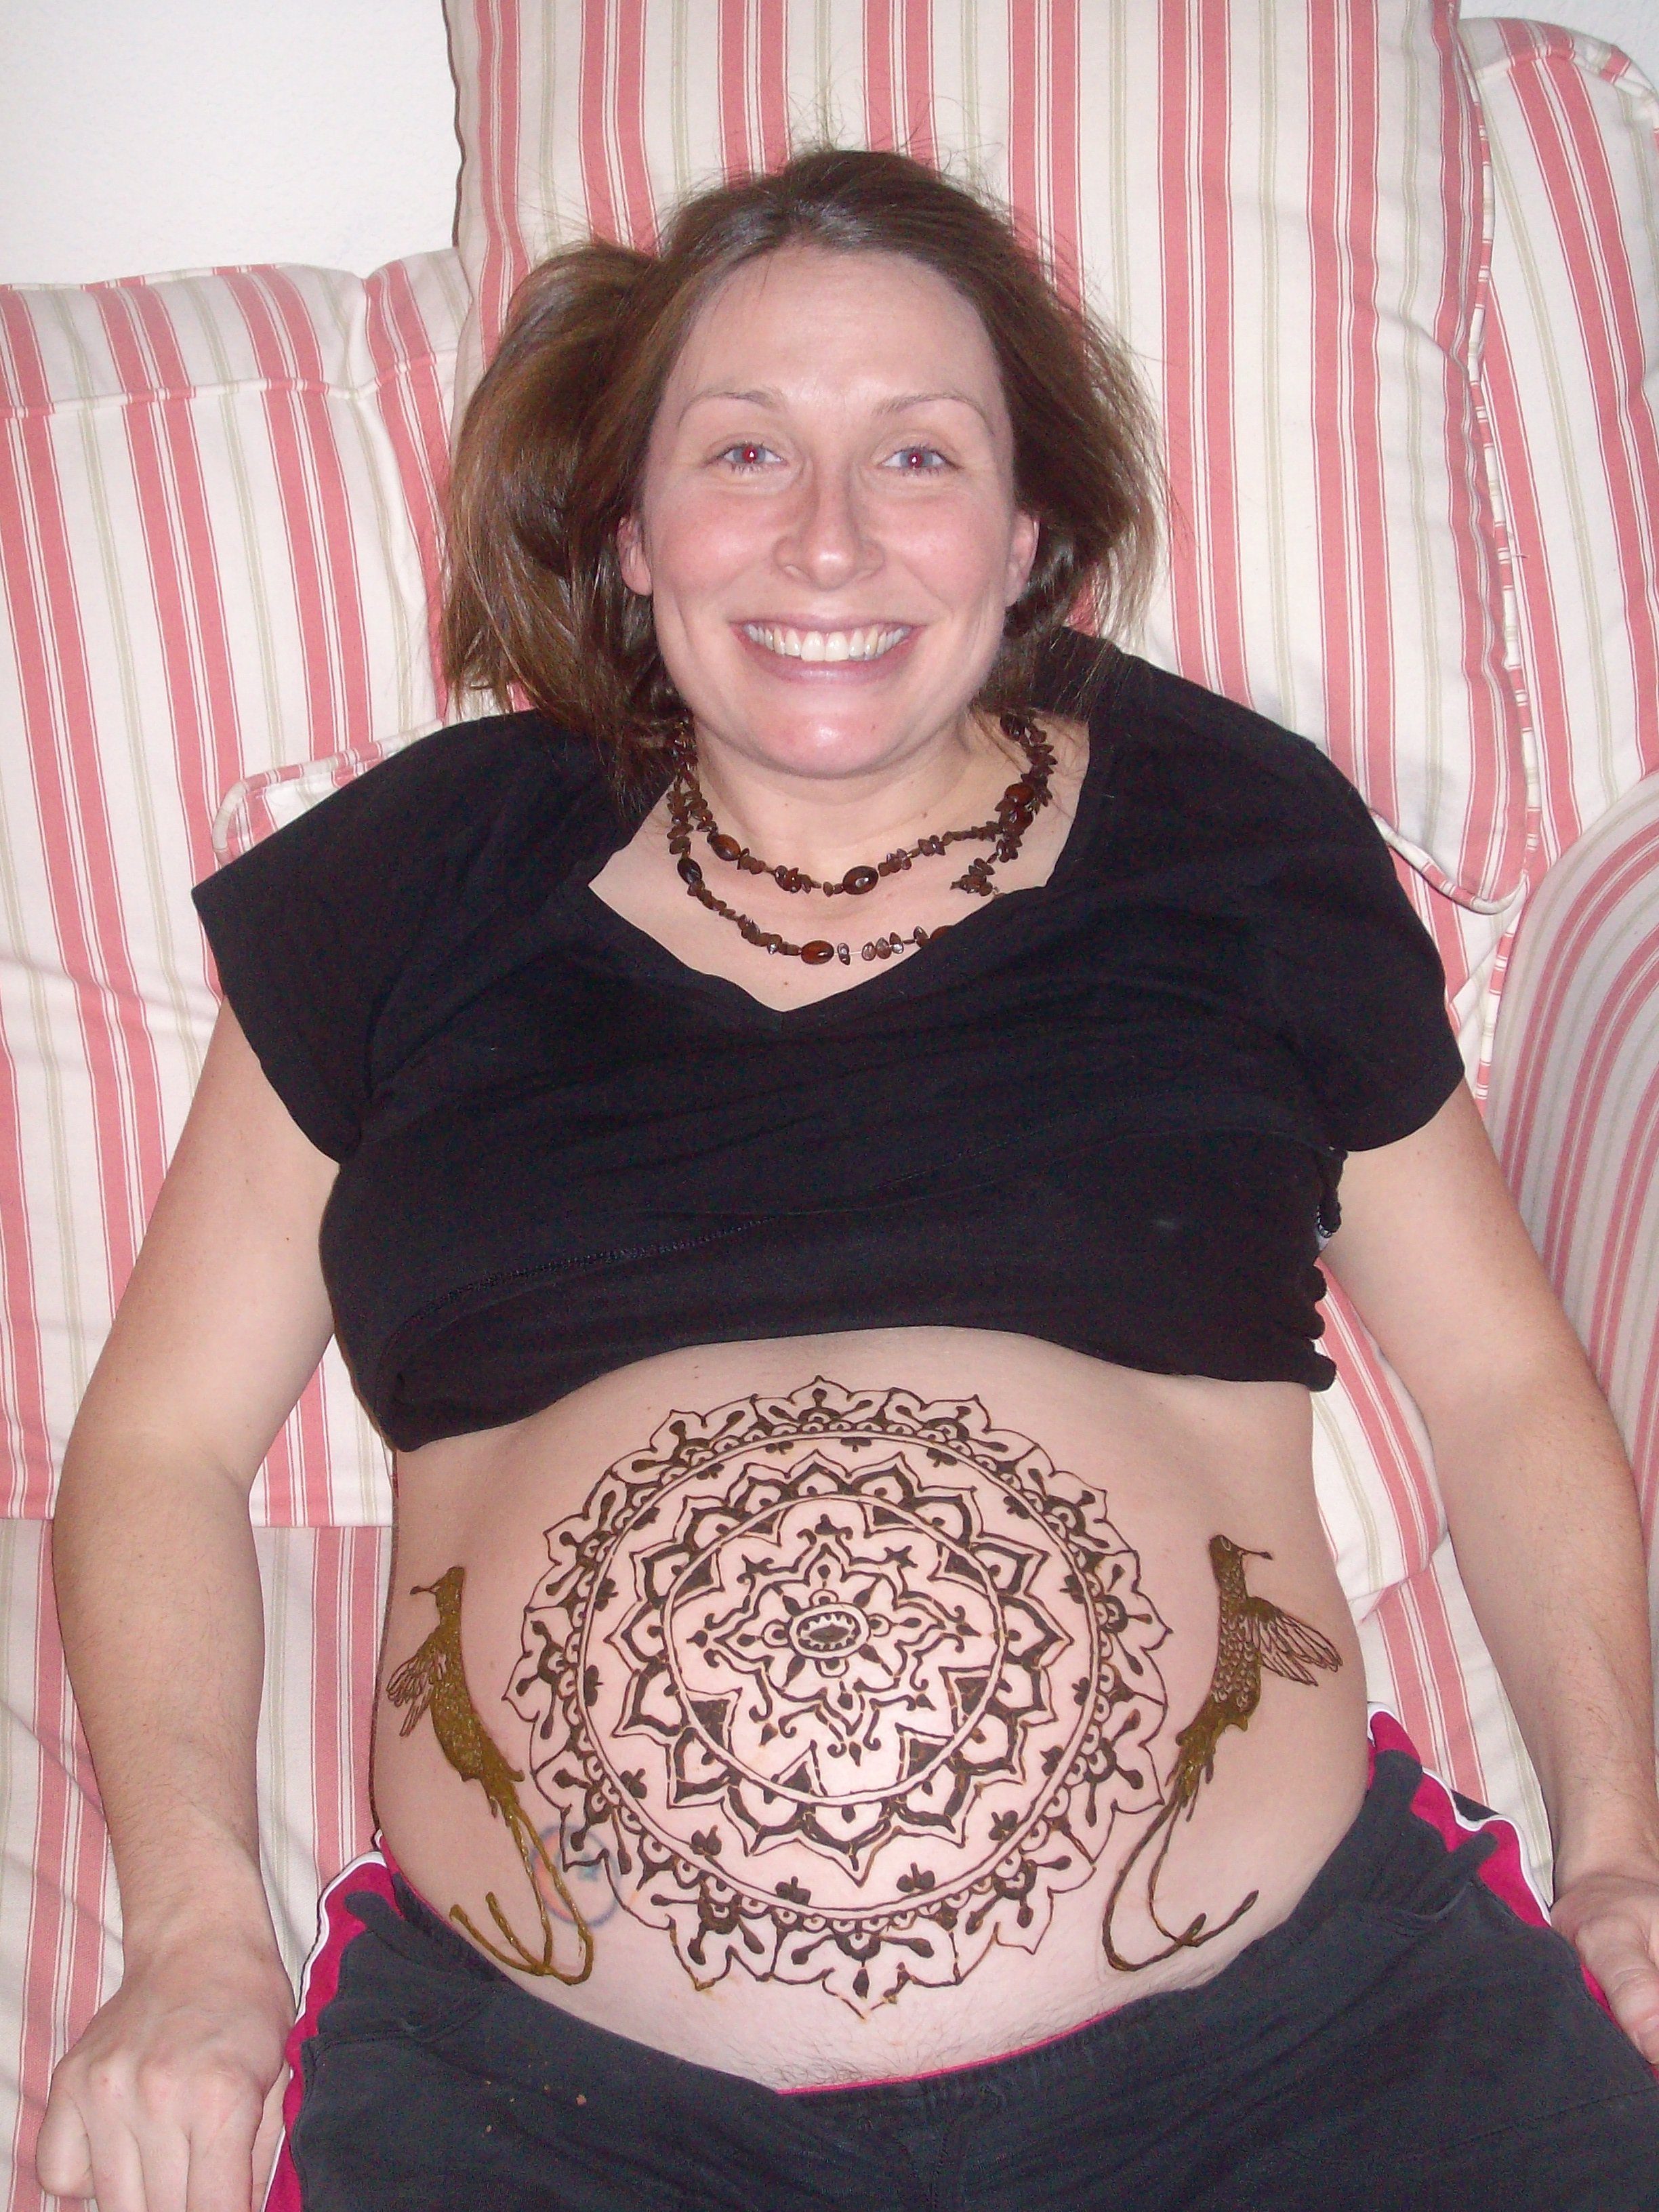 Jamie with her henna belly